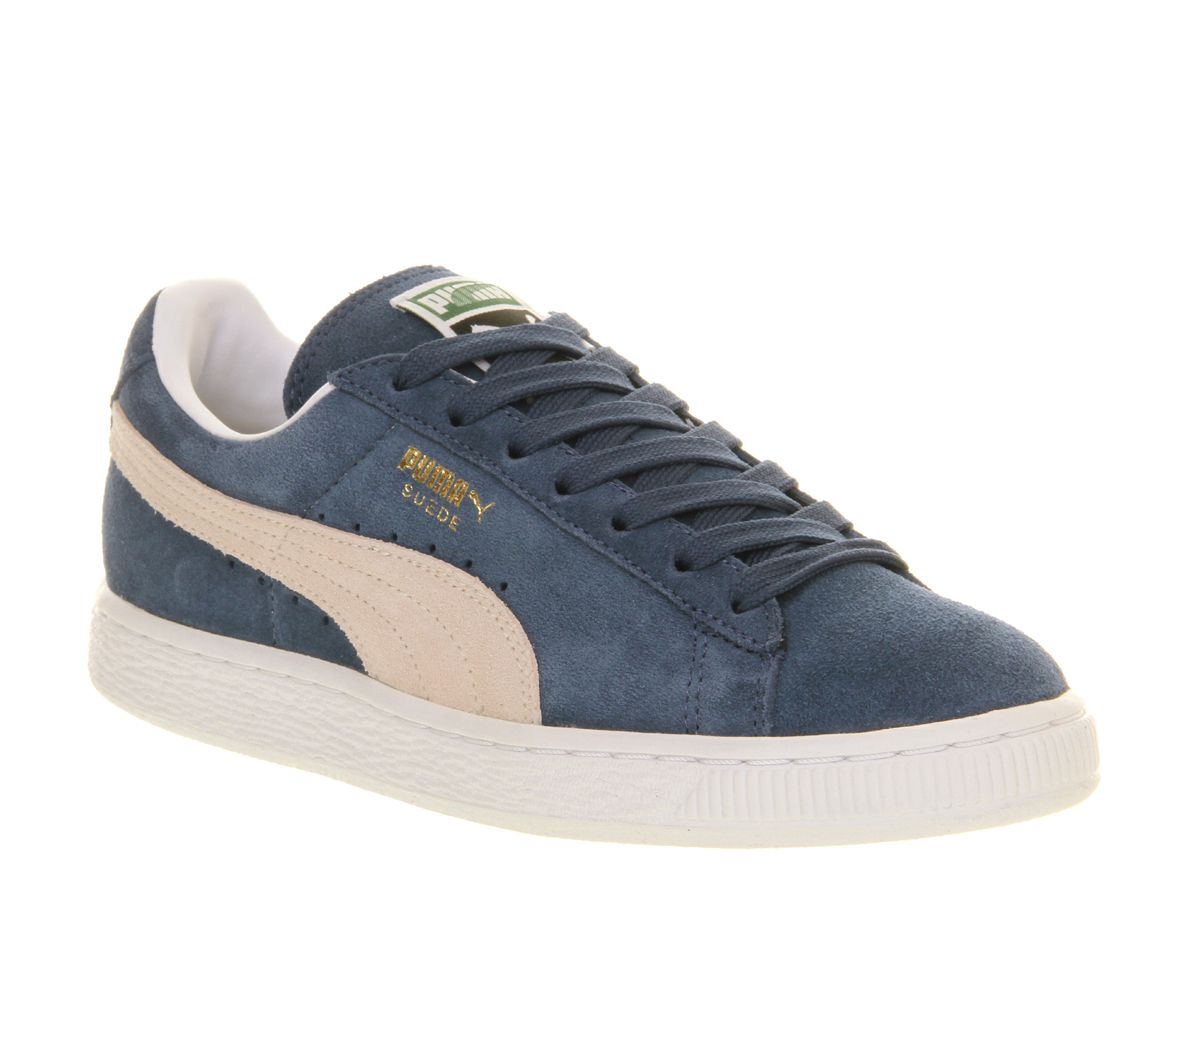 Puma Suede Classic Ensign Blue White - Unisex Sports